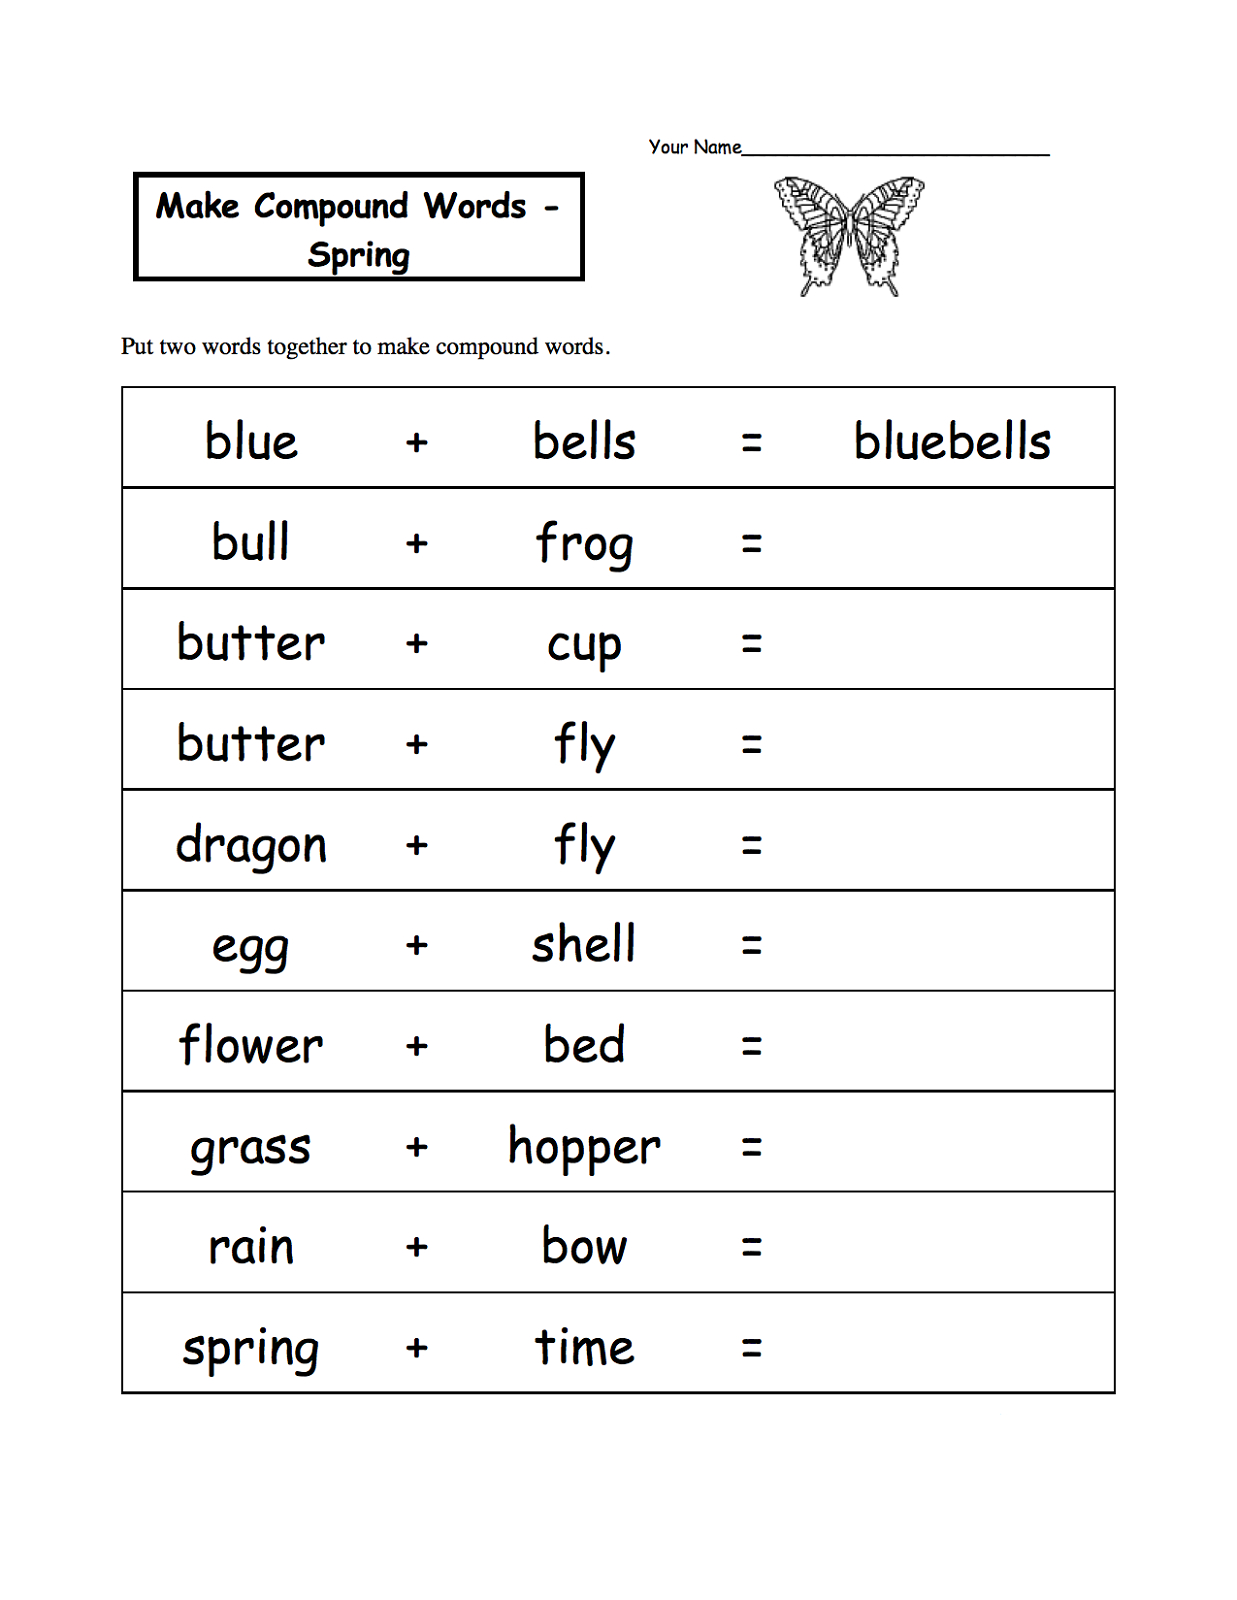 Printable Activity Sheets For Kids | Activity Shelter - Free Printable Activity Sheets For Kids